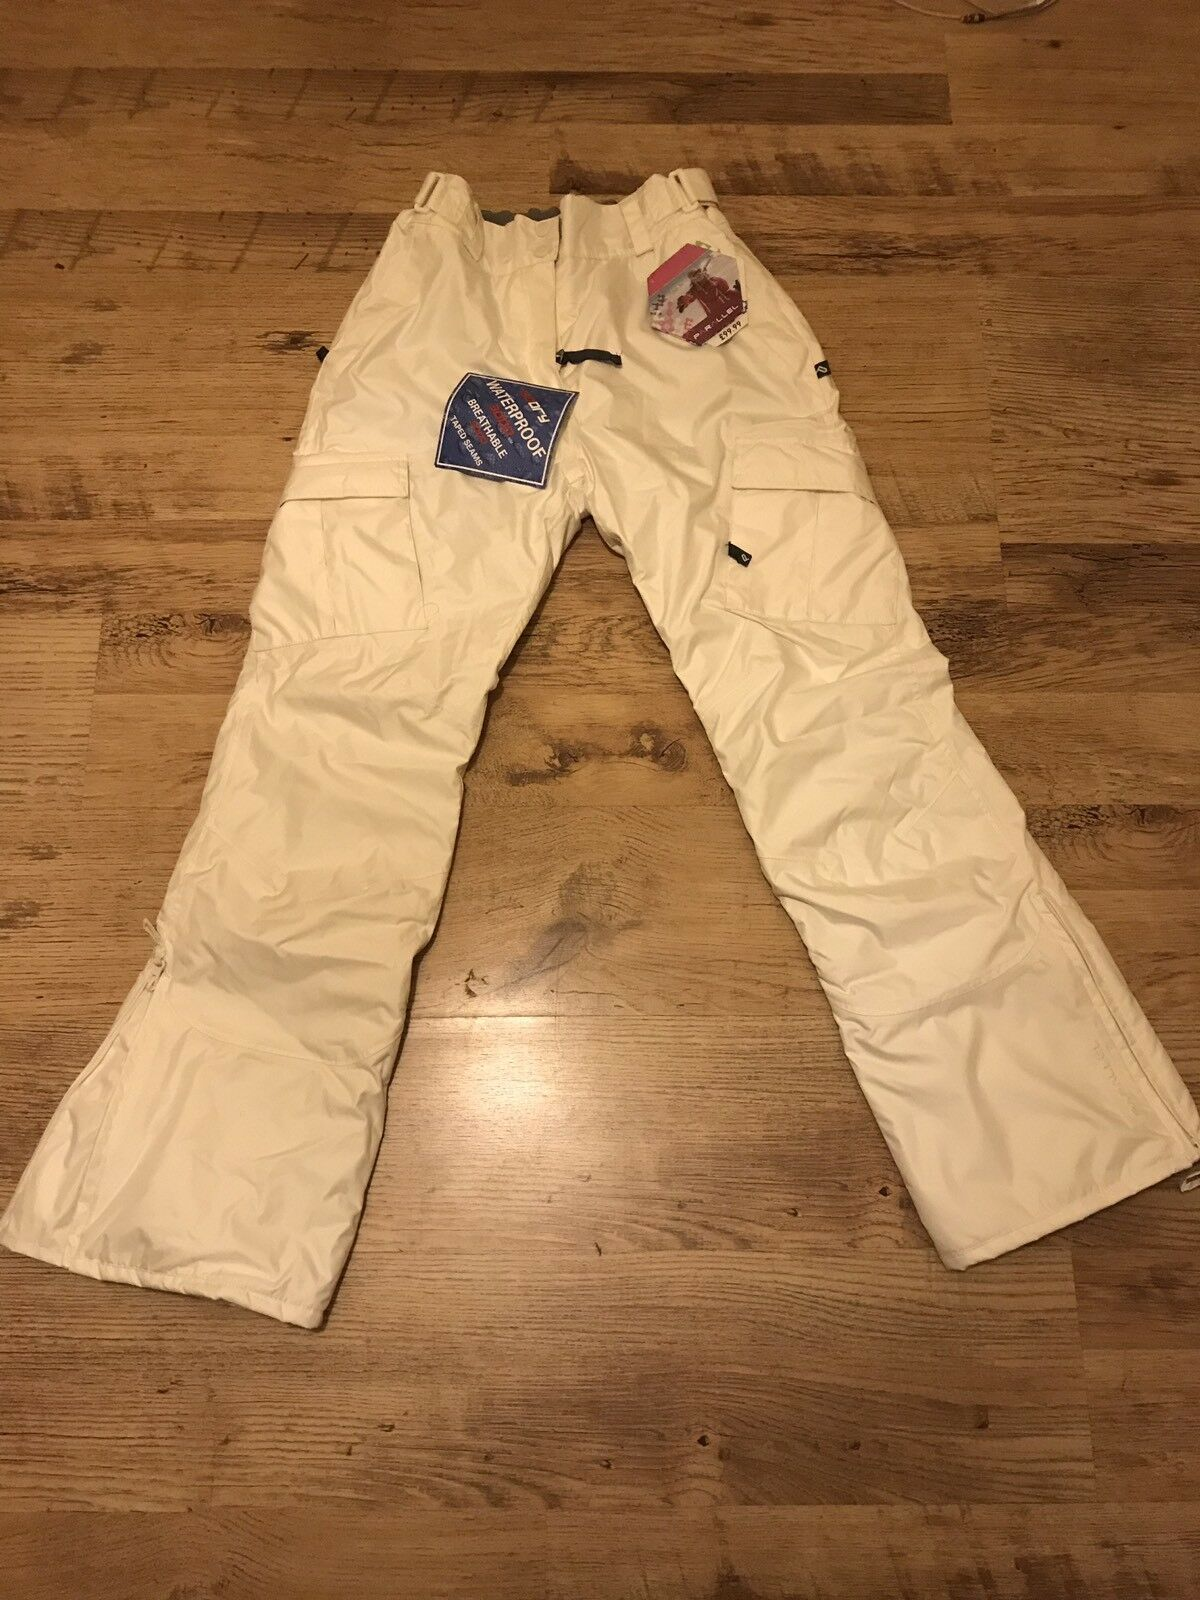 Ski trousers women's white waterproof fleece-lined size  SMALL  sale with high discount